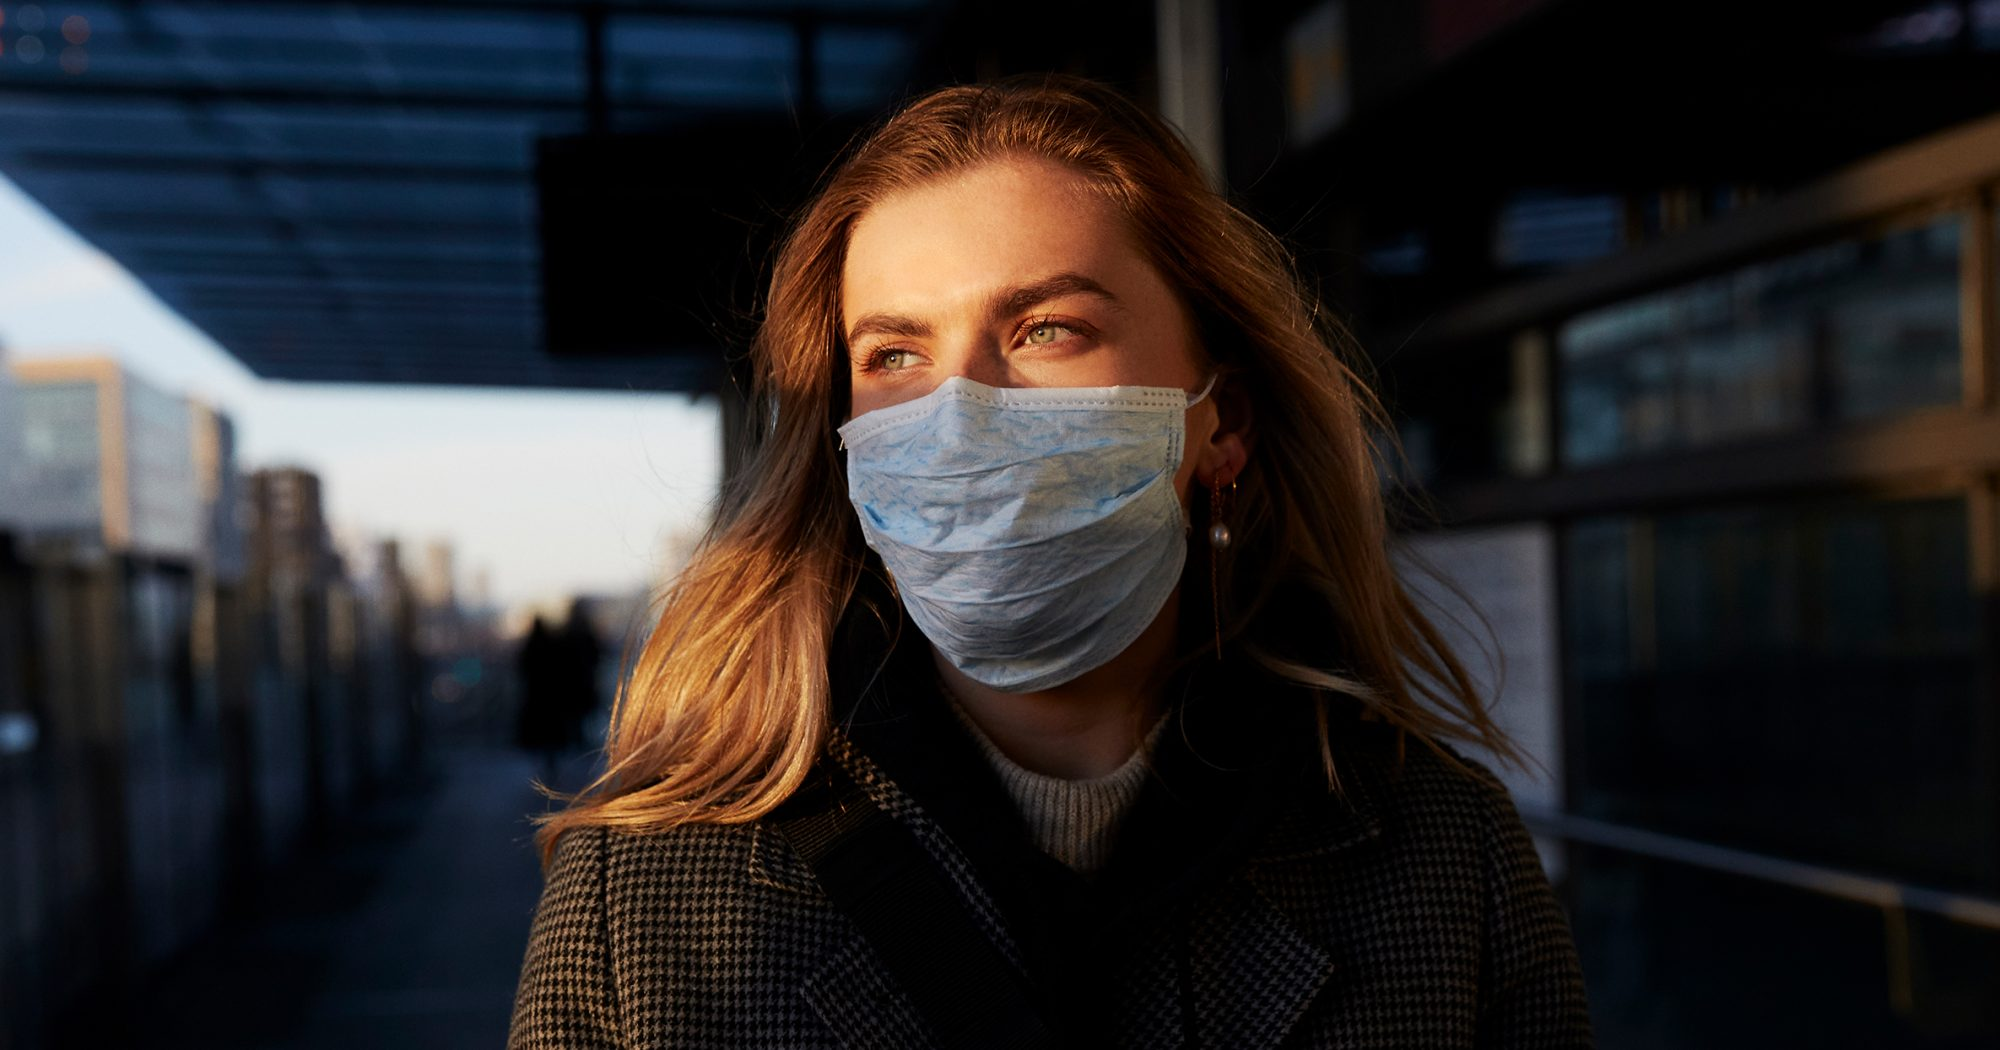 Young woman standing on train station wearing protective mask